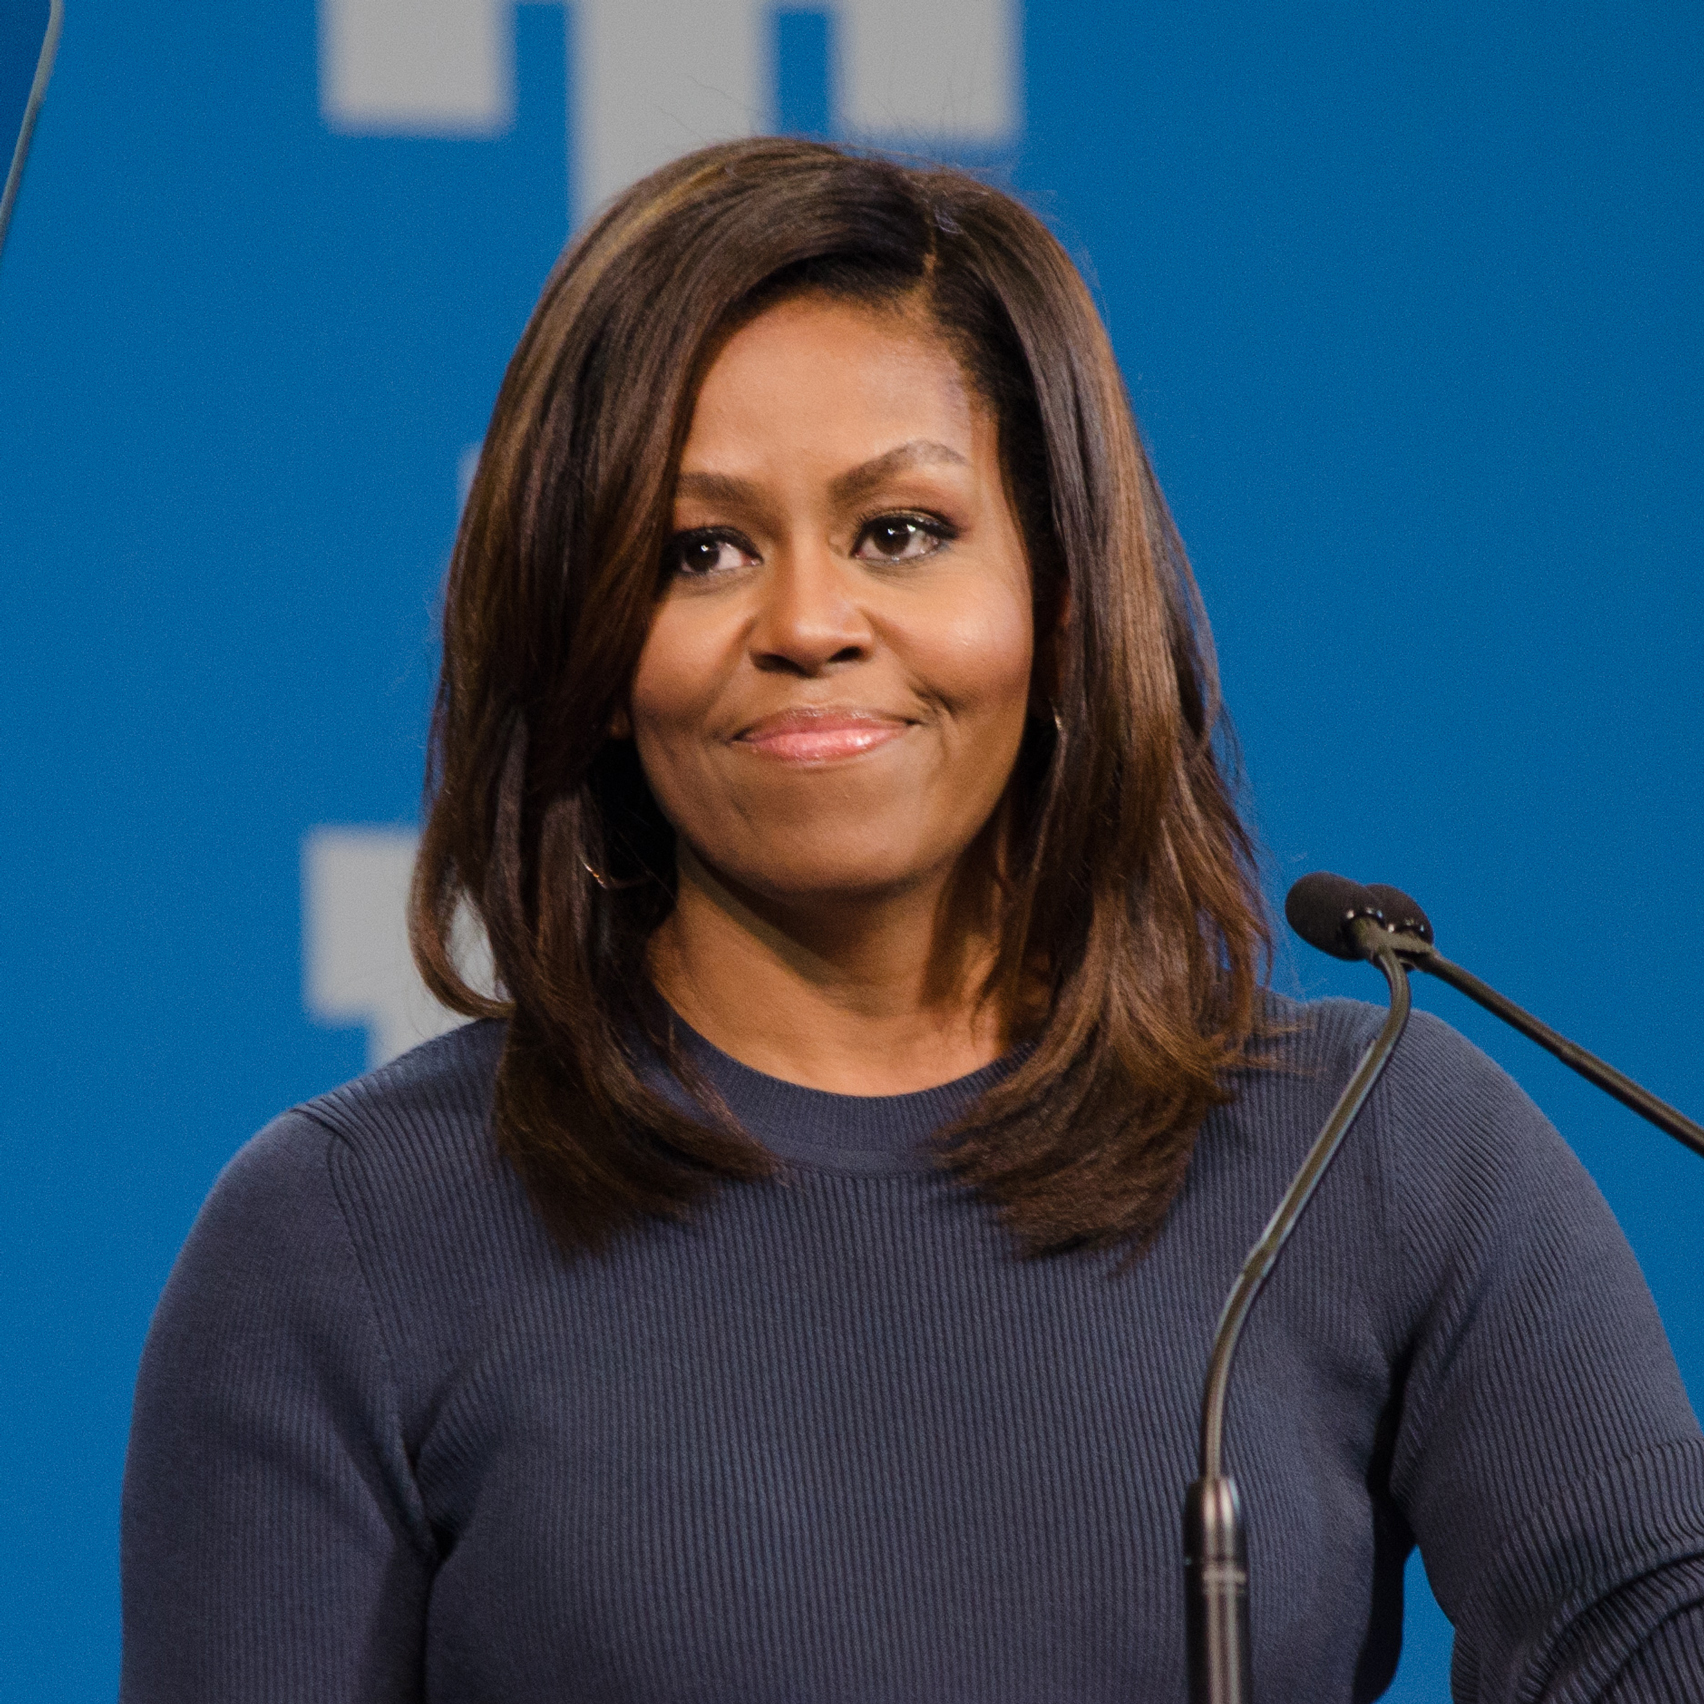 Make room for more women at the table, Michelle Obama tells Apple